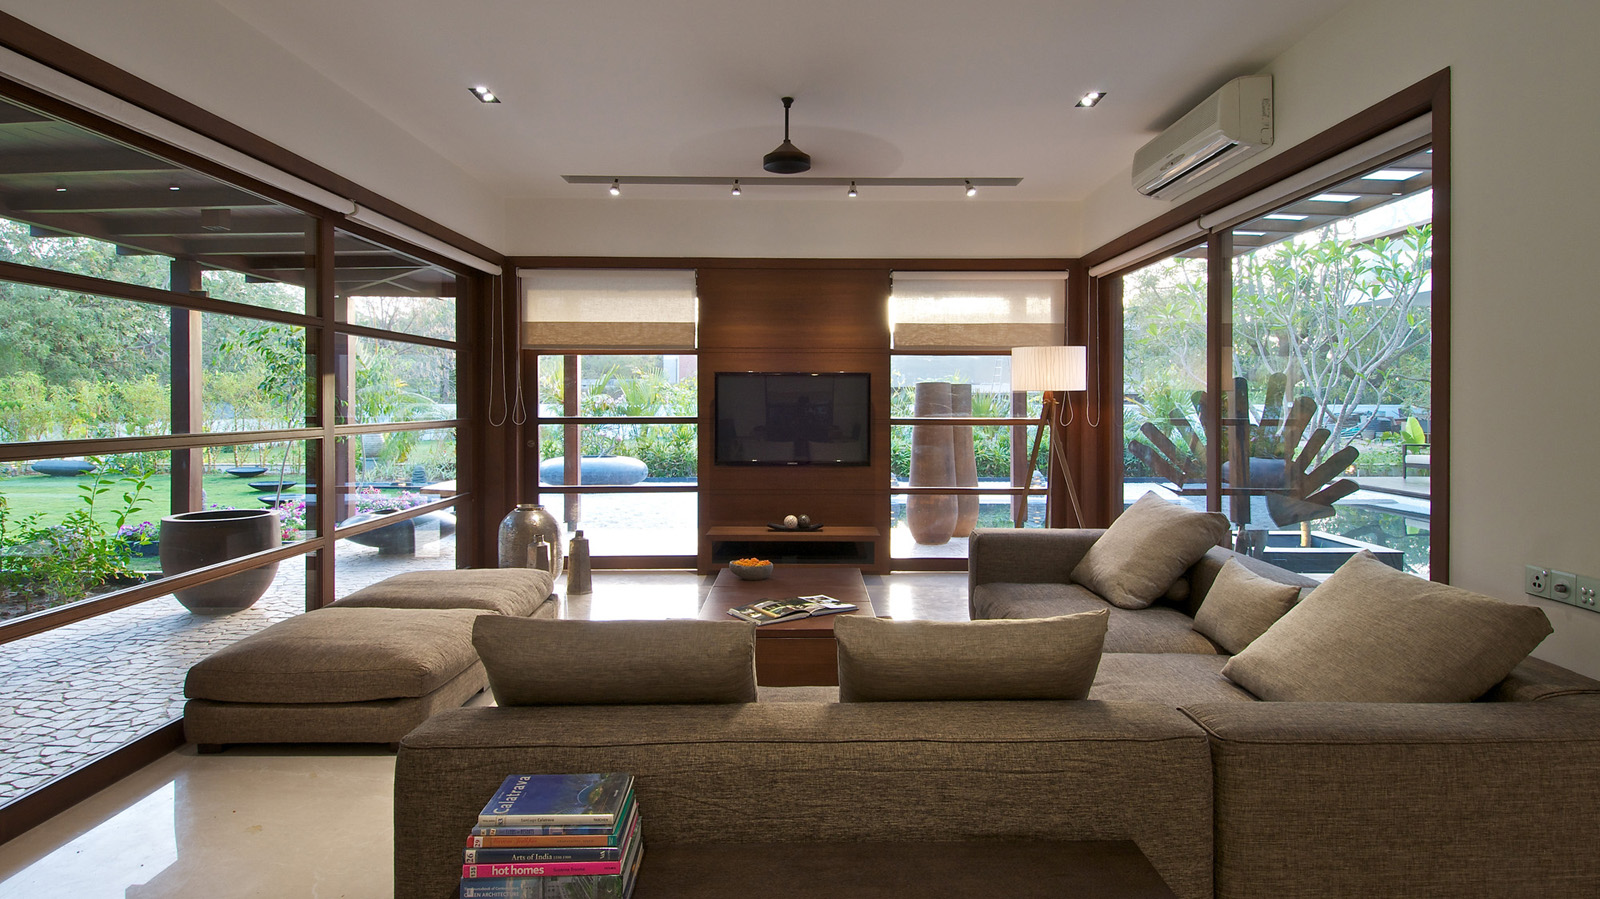 Timeless Contemporary House In India With Courtyard Zen Garden